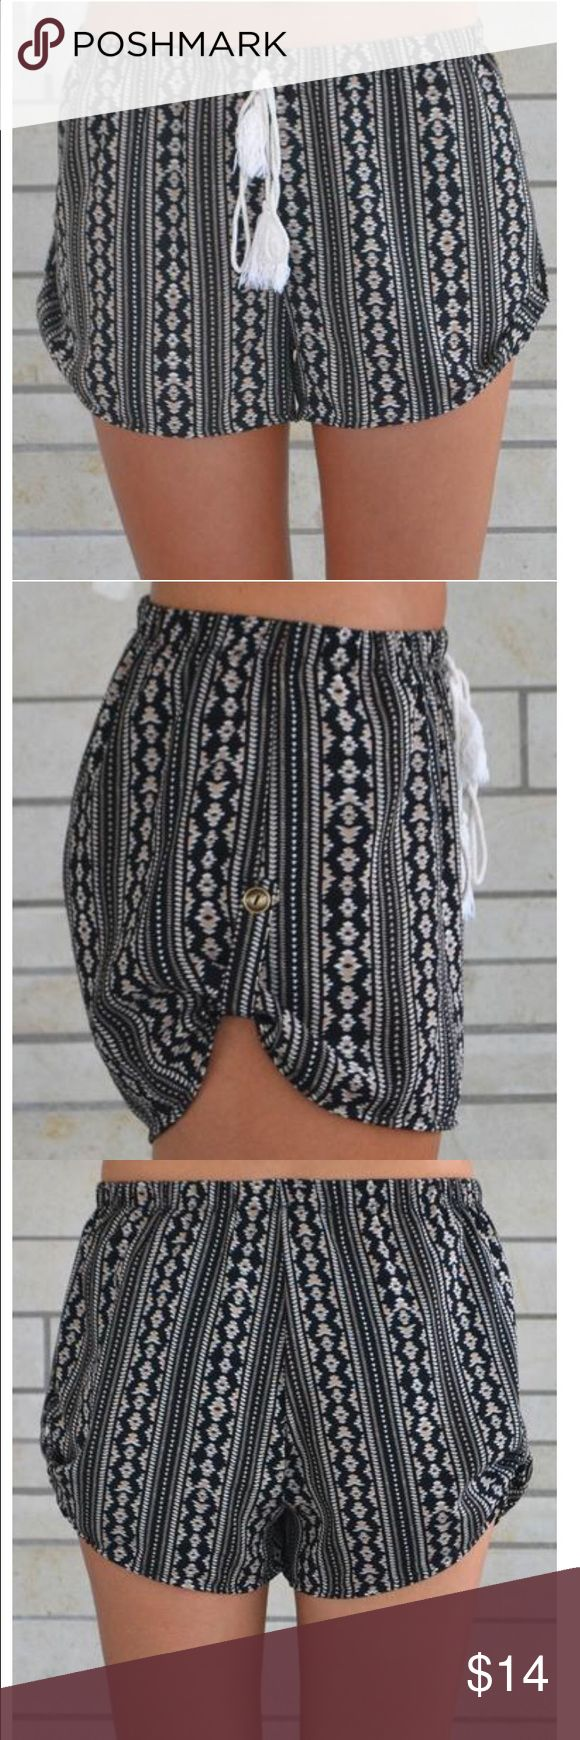 Aztec Print Shorts Shorts with side button Shorts